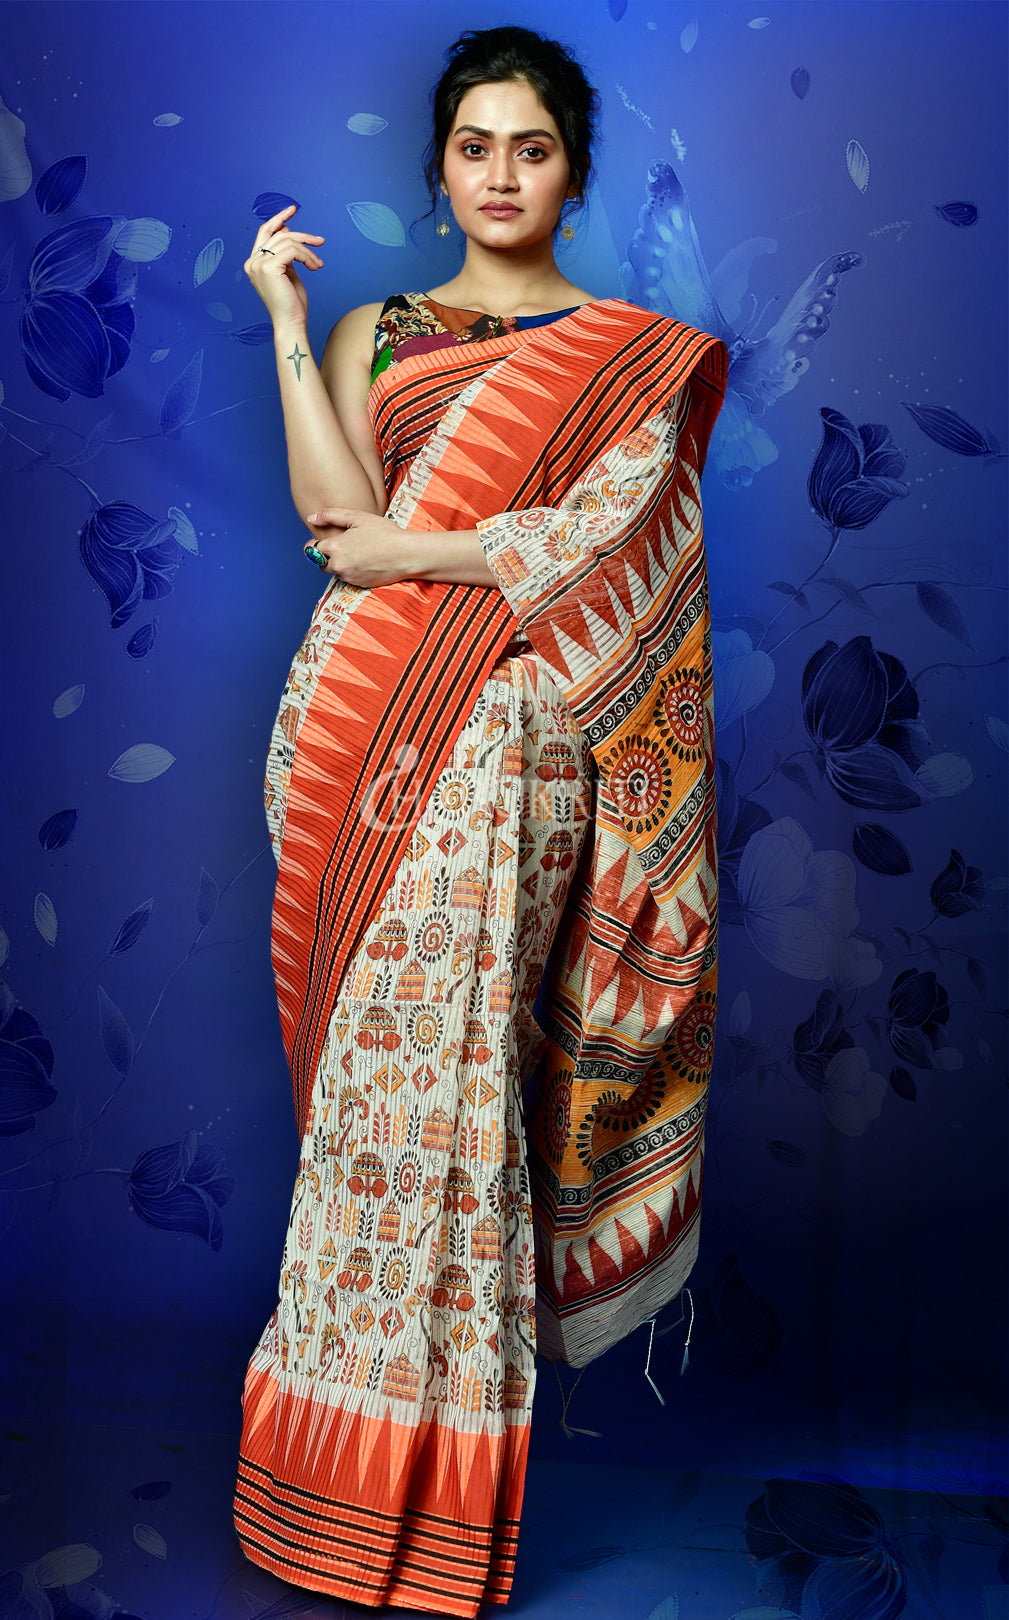 Rust Orange And Off White Ketiya Cotton Saree With Temple Border - Charukriti.co.in